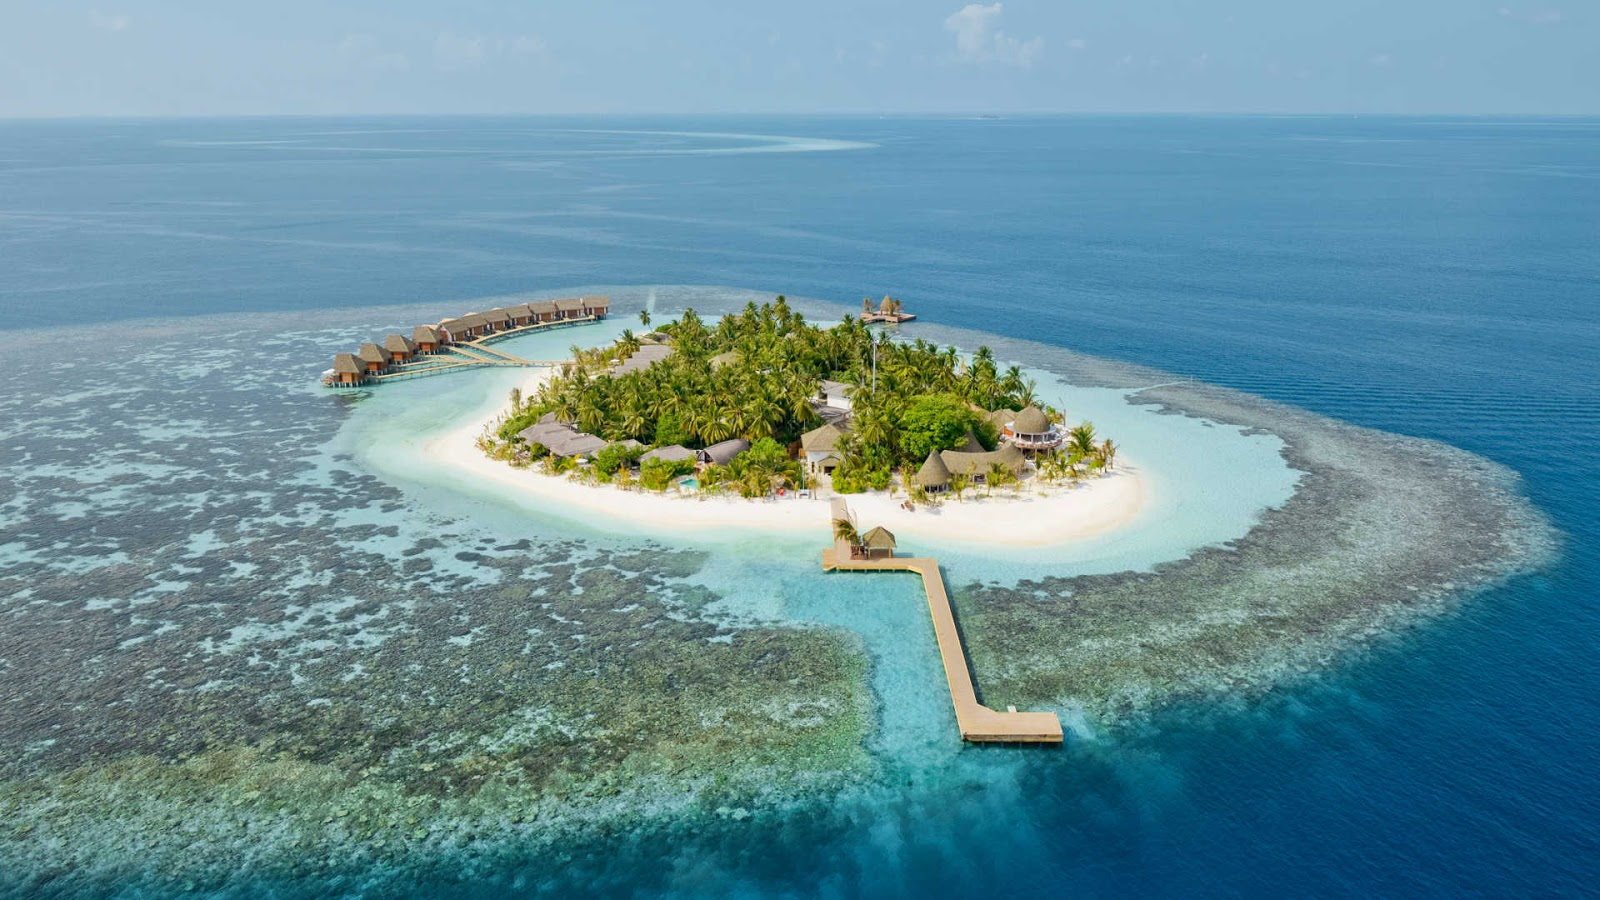 Maldives Is Famous For The Presence Of Some Worlds Best Beach Resorts And Spas That Are Sure To Provide You A Way Know Real Essence Luxury